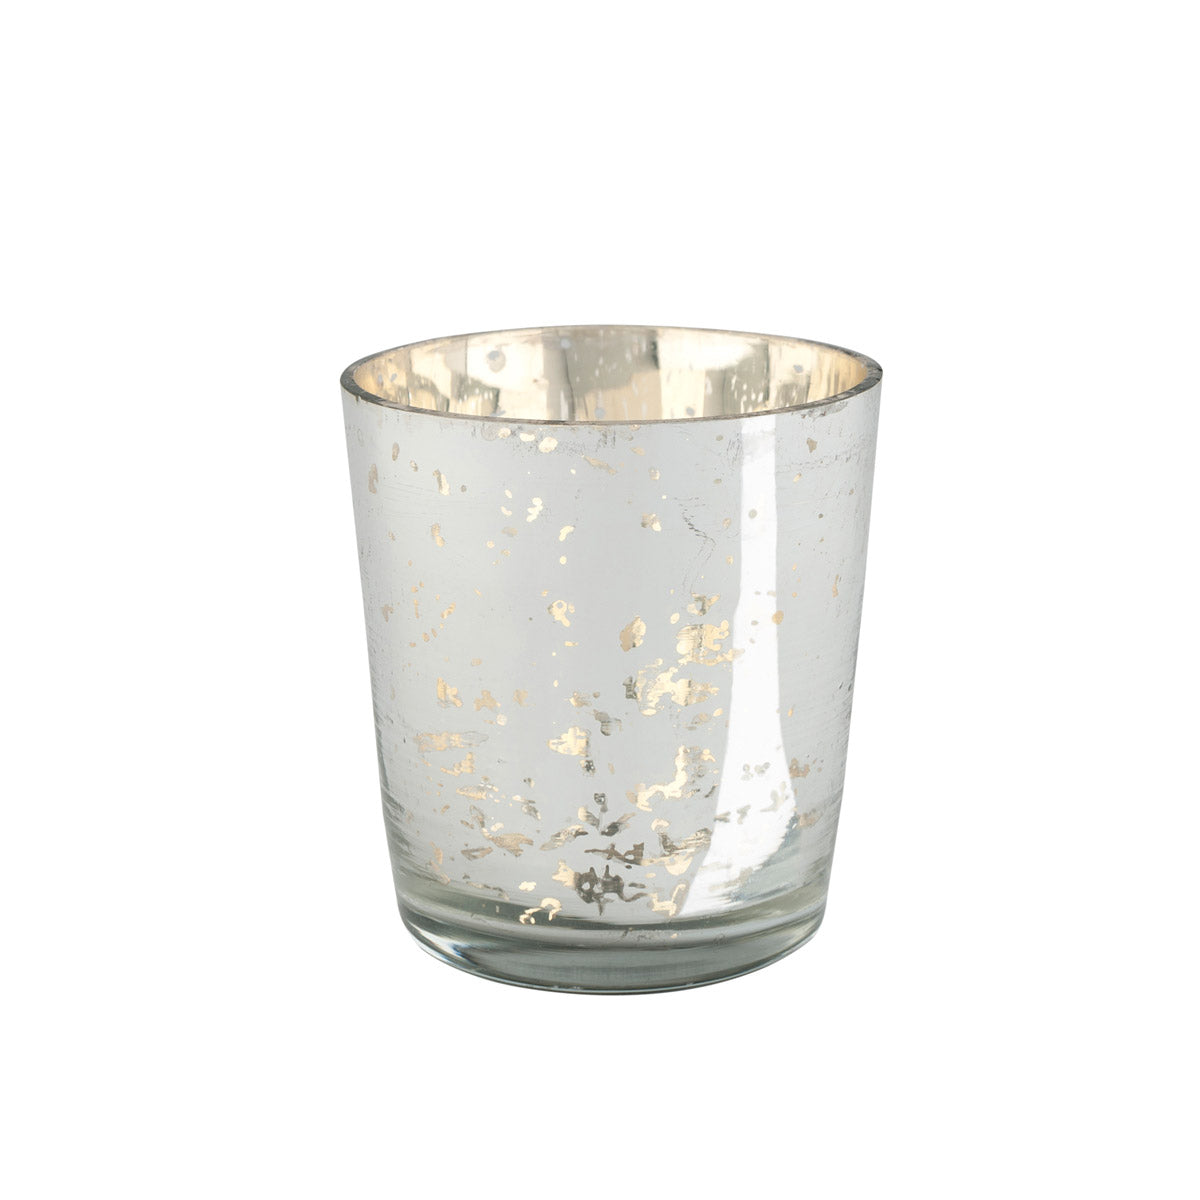 Straight Edge Tea Light Holder - Standard